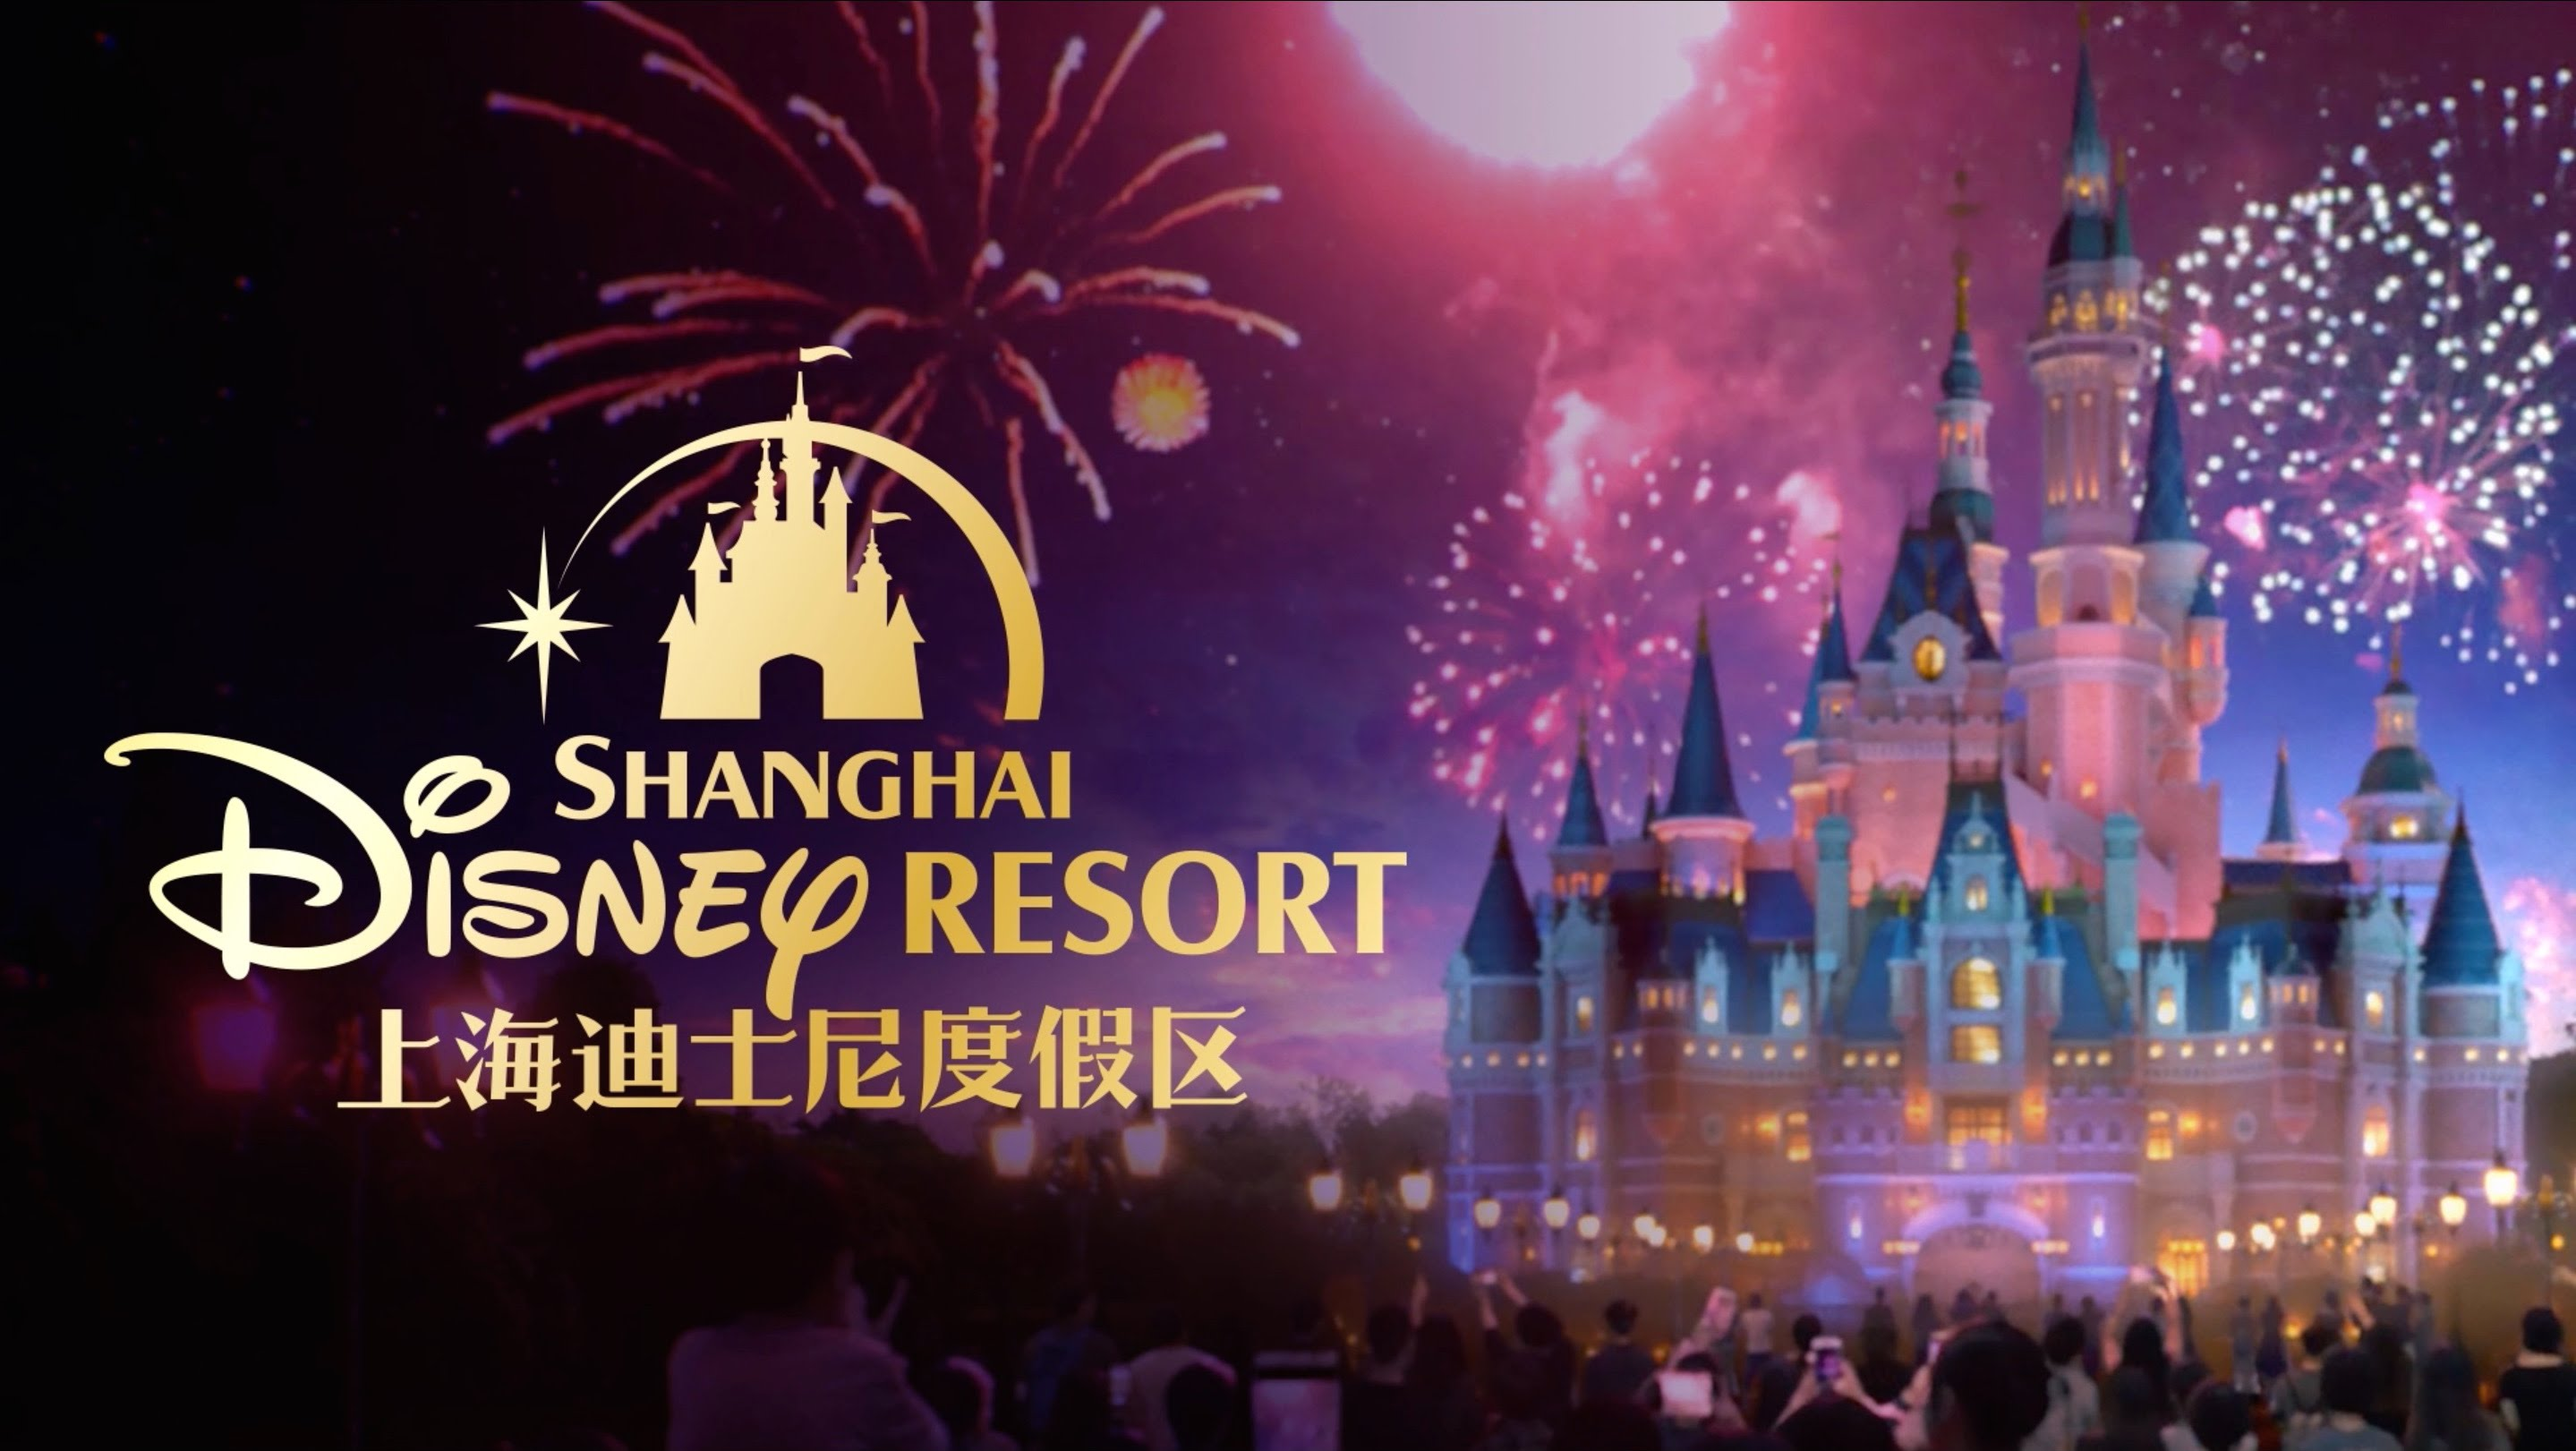 Shanghai Disney Resort Launches With Spectacular Three-Day Grand ...